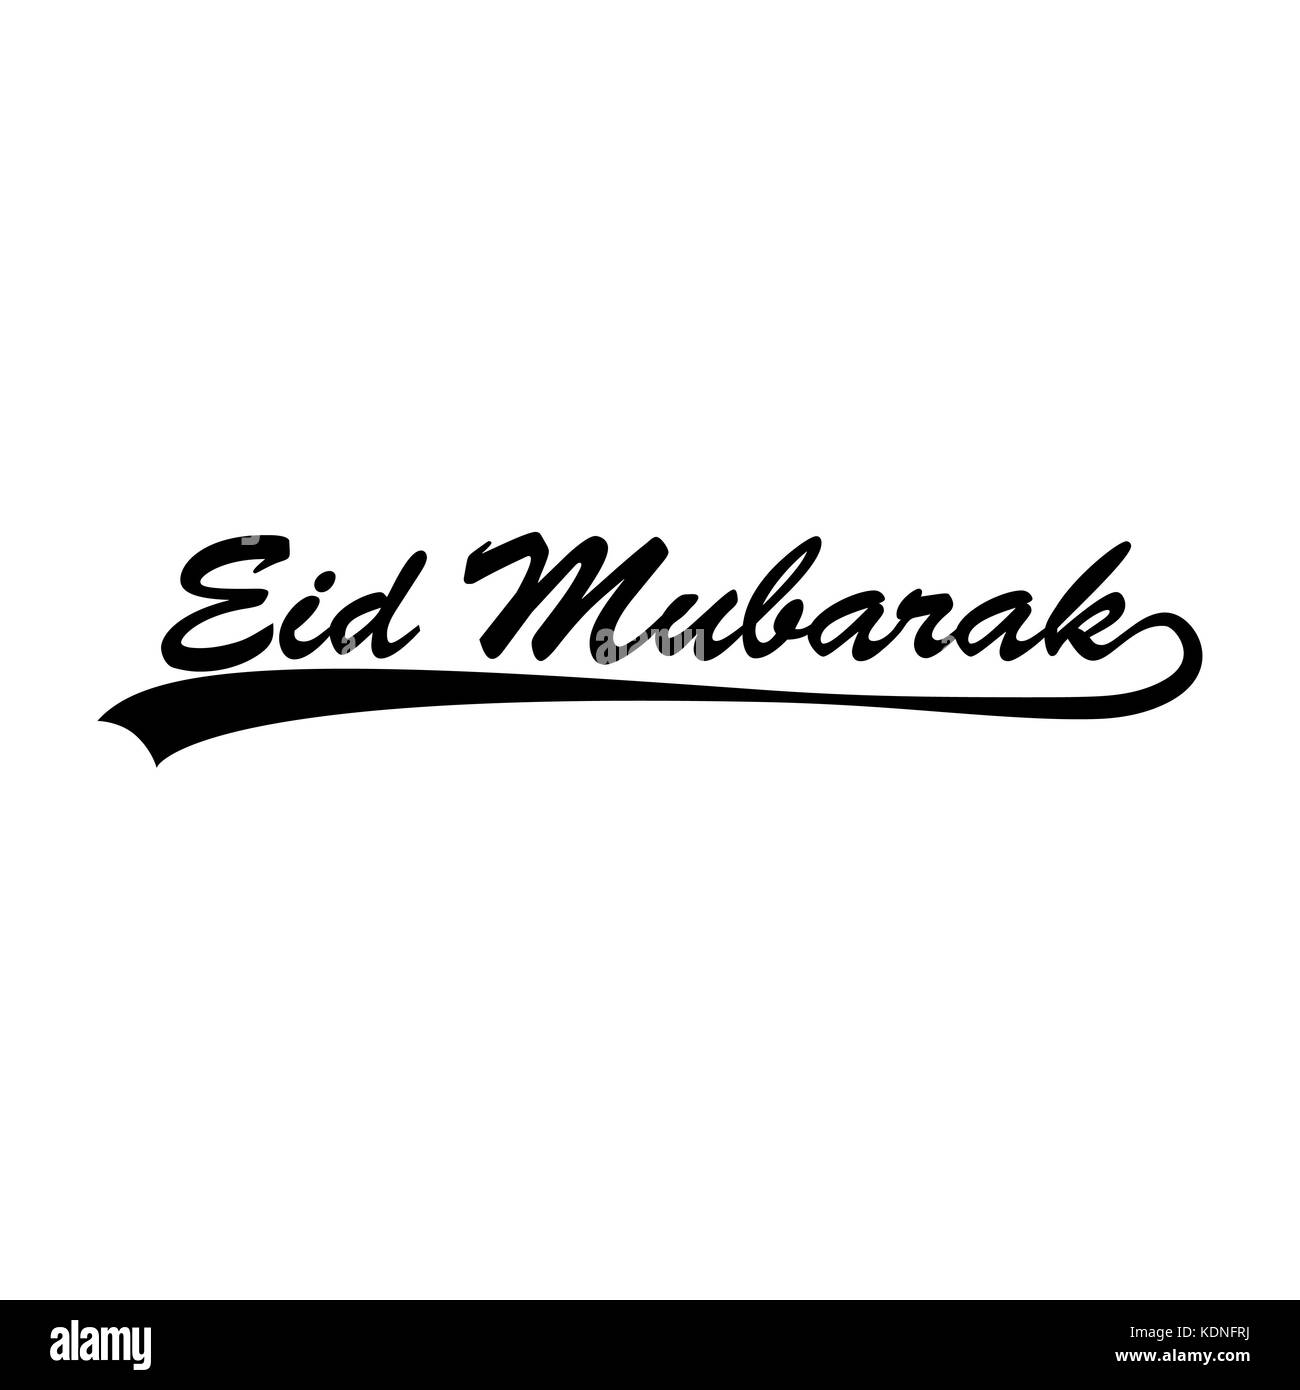 Eid mubarak black and white stock photos images alamy eid mubarak vintage style vector stock image m4hsunfo